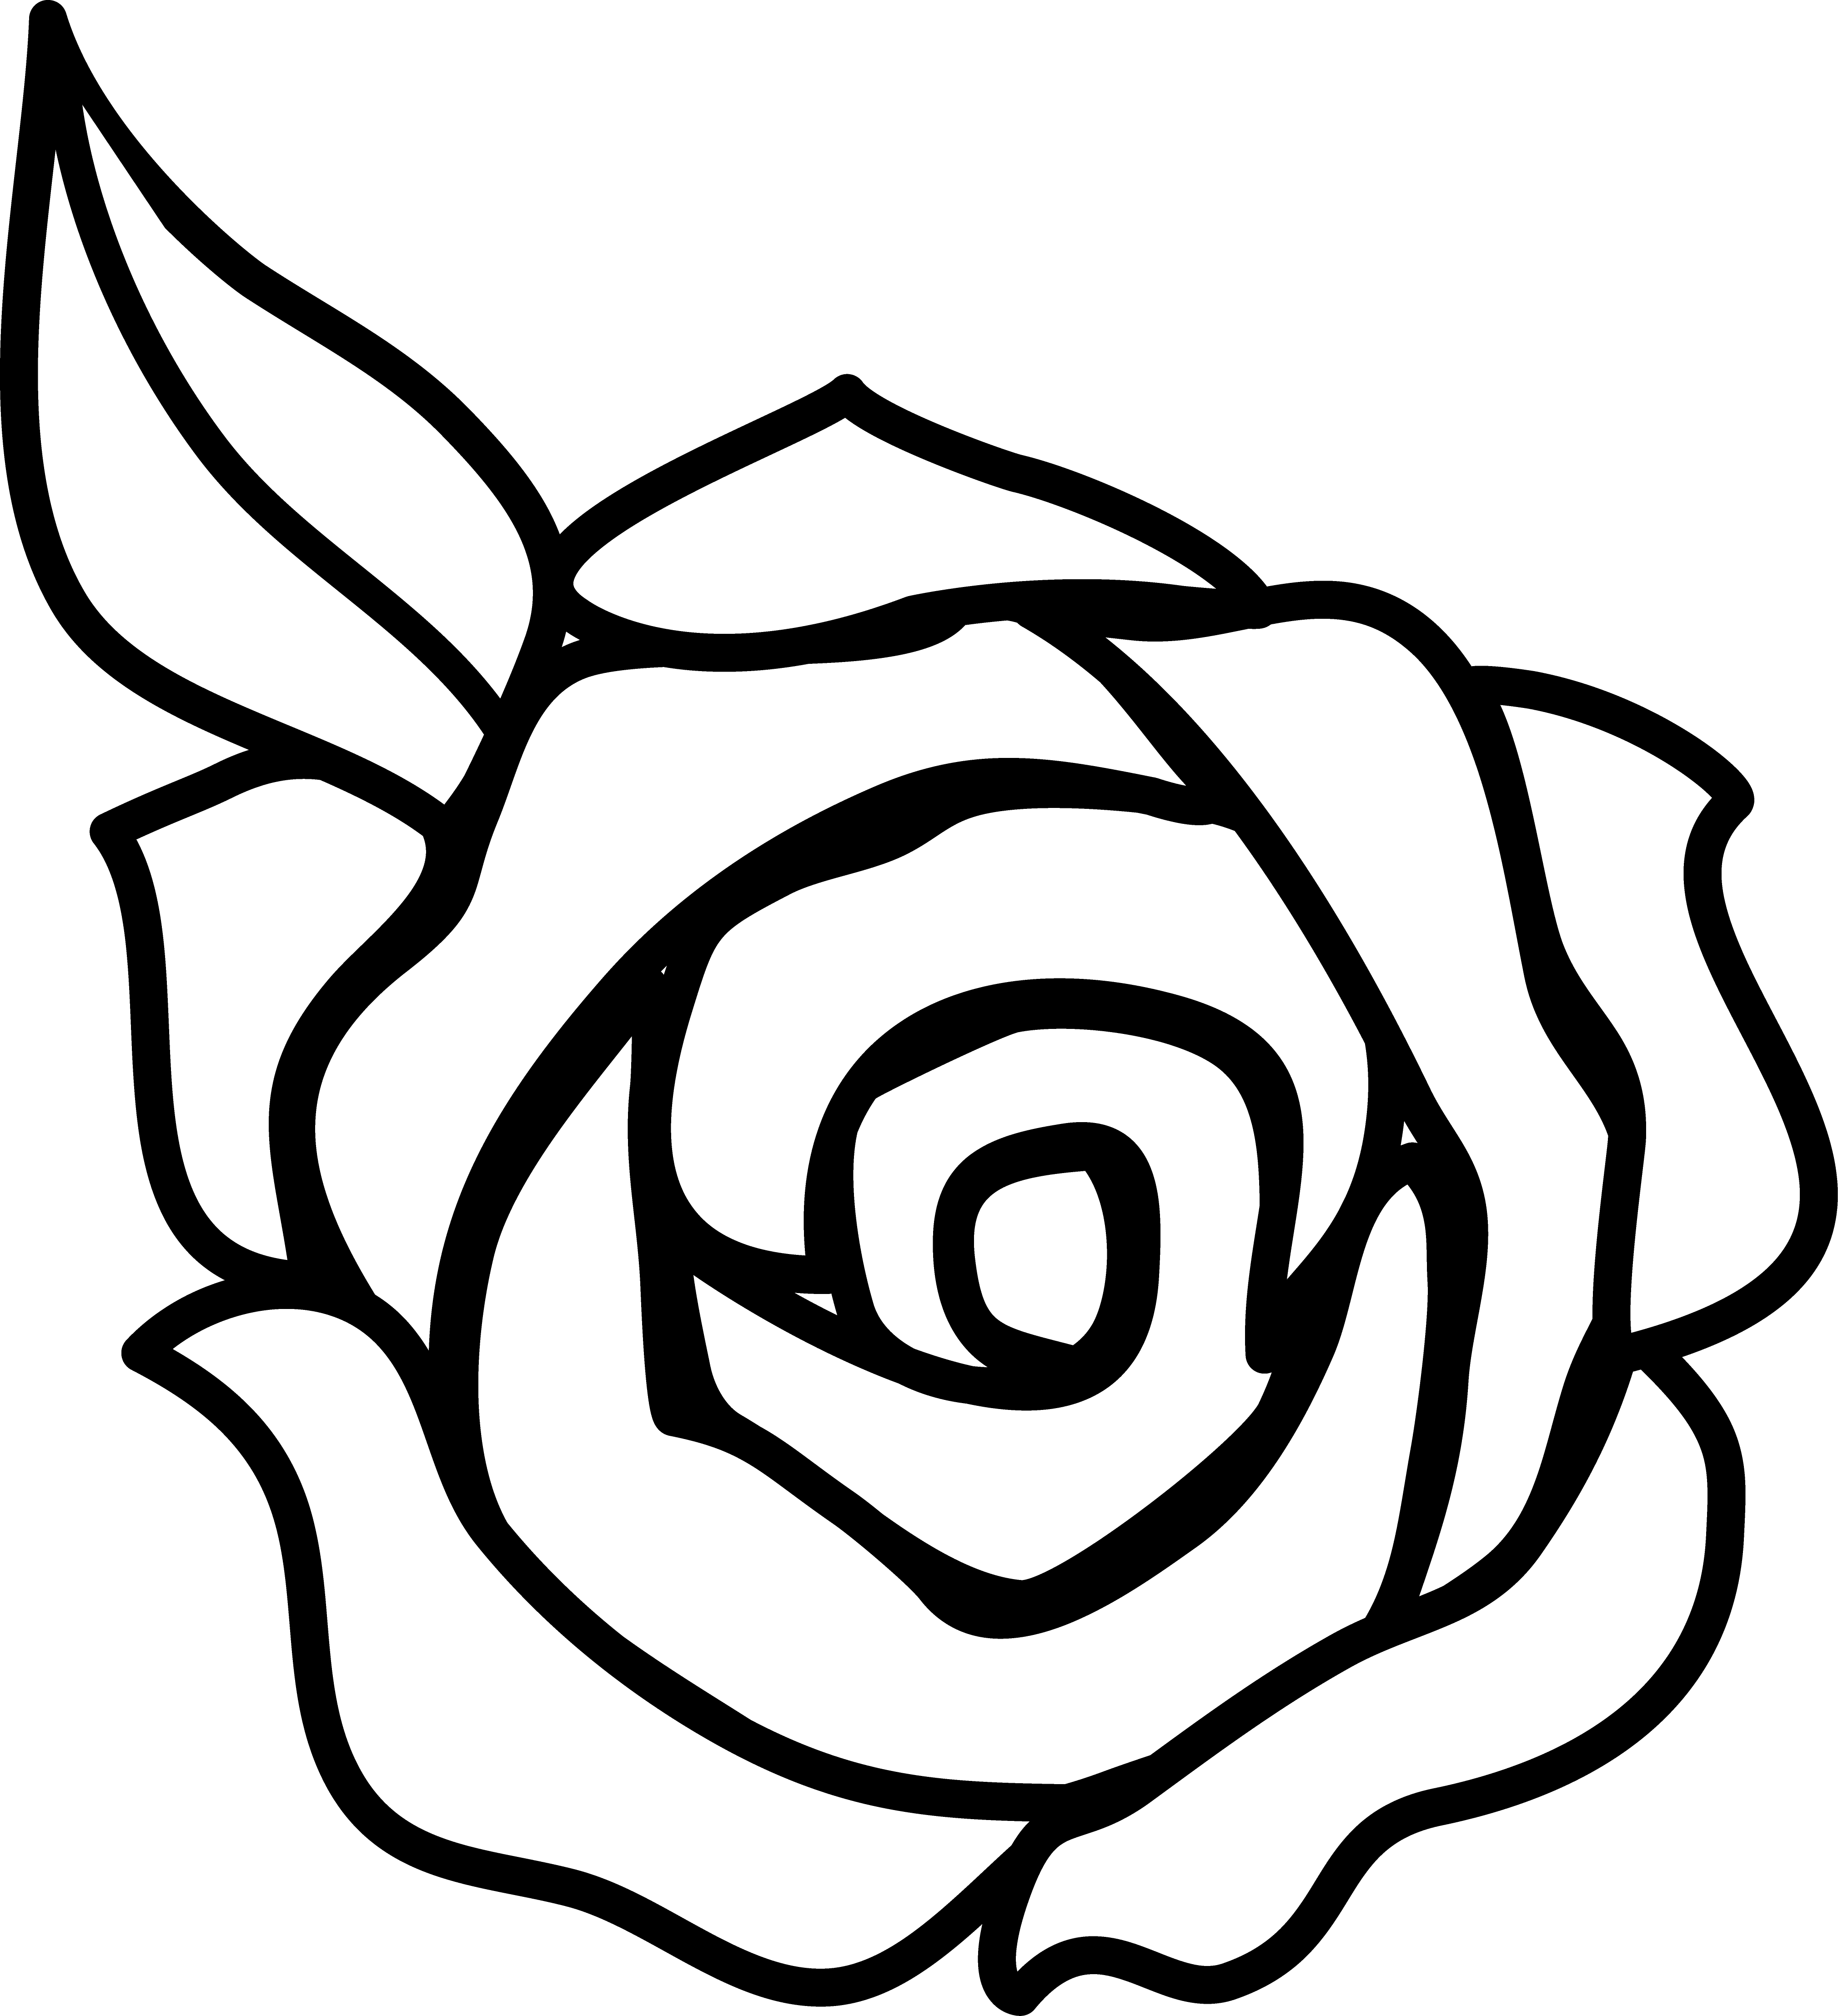 Sketch rose cliparts banner black and white library Free Black And White Art Designs, Download Free Clip Art, Free Clip ... banner black and white library